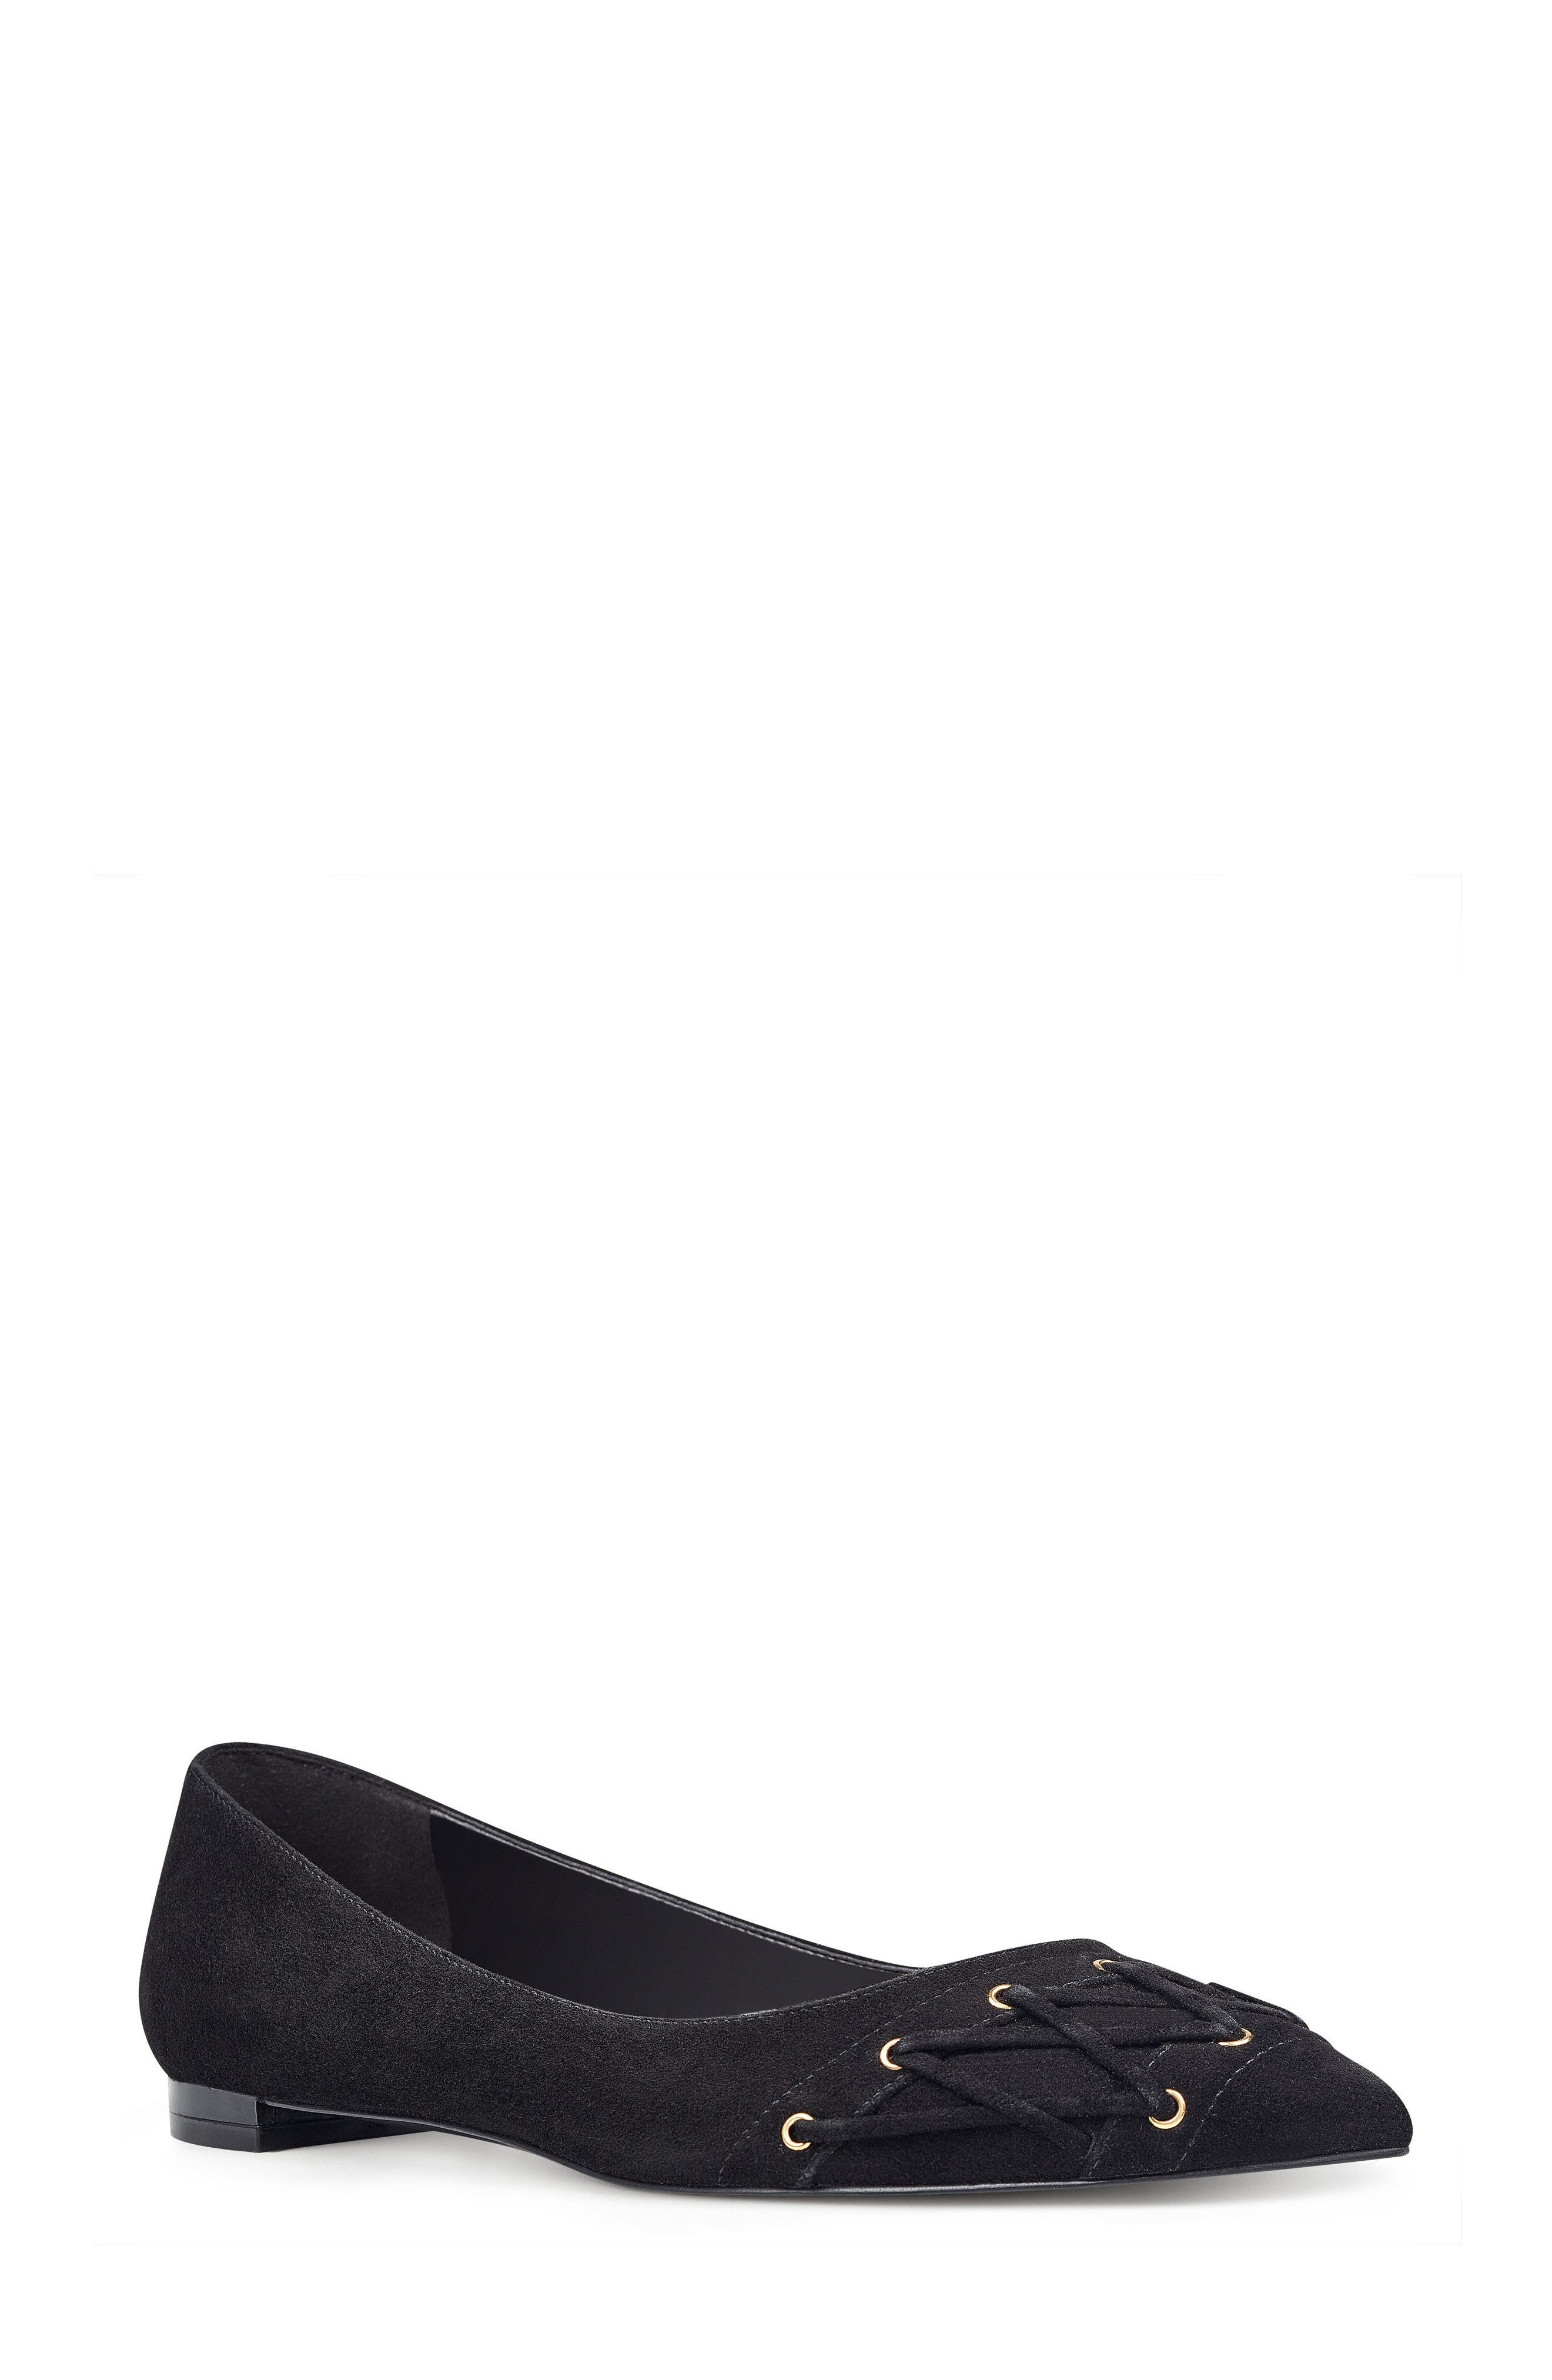 Alternate Image 1 Selected - Nine West Alyssum Corset Skimmer Flat (Women)